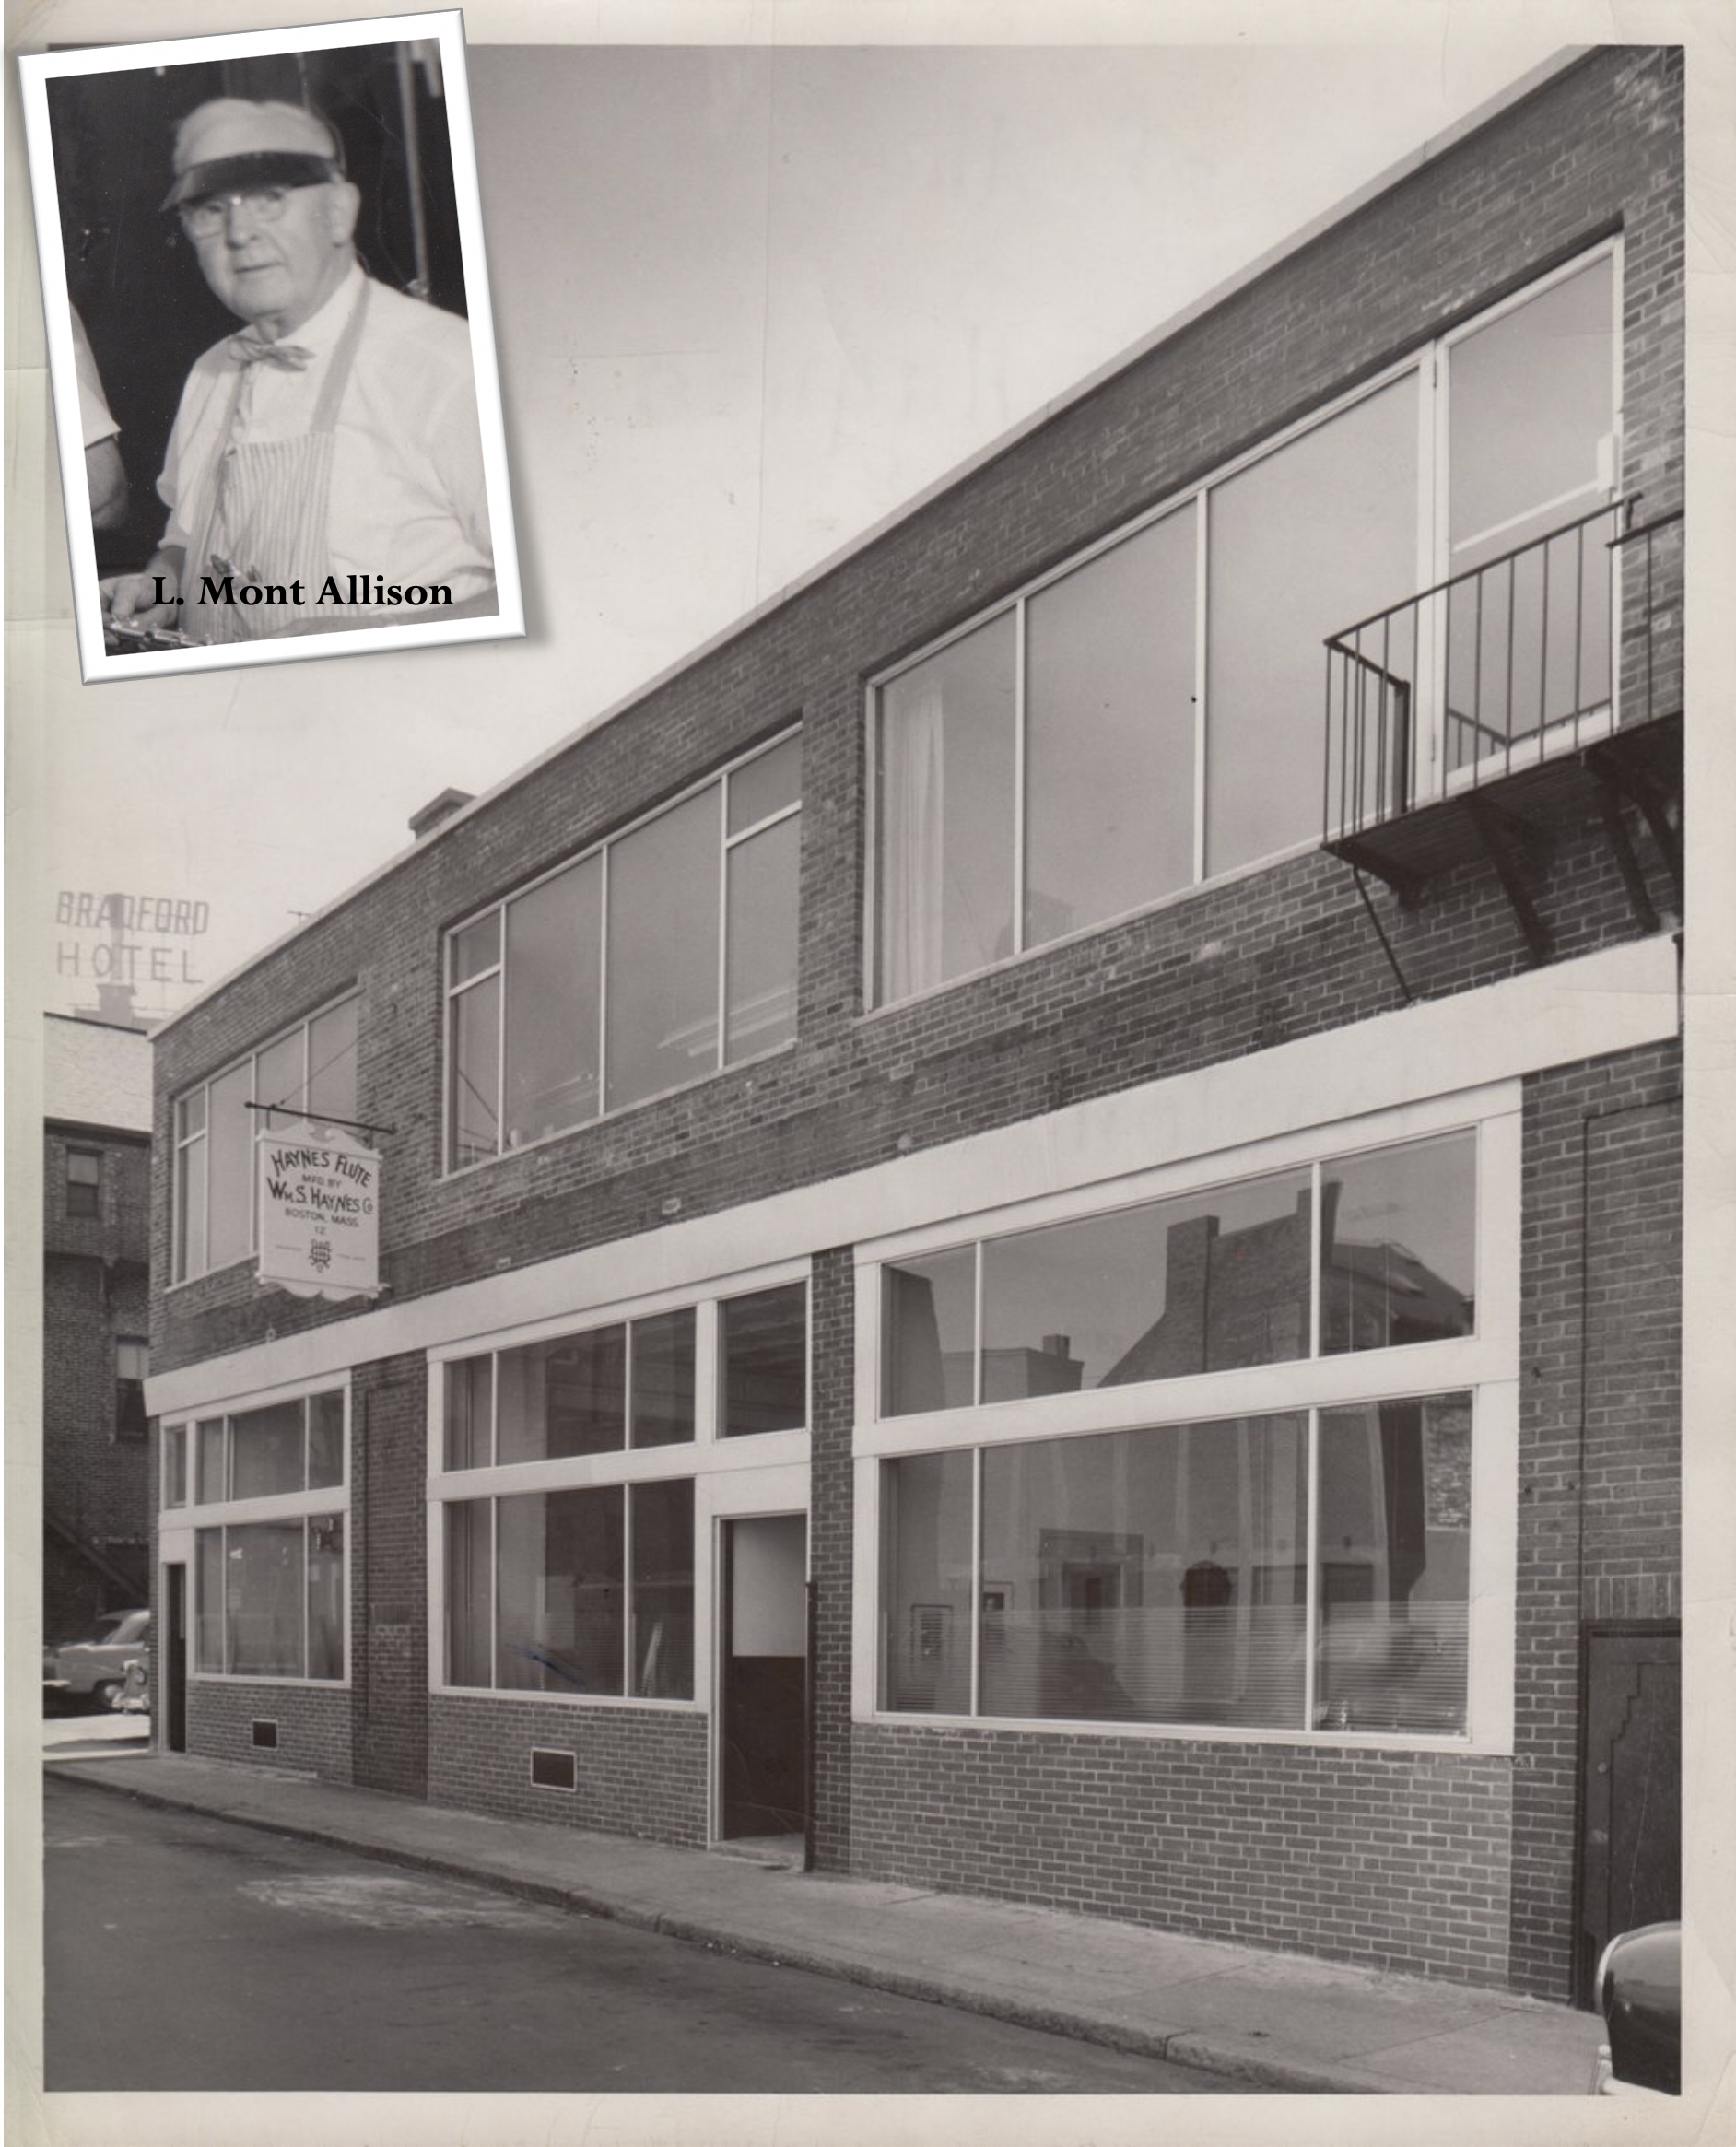 1947 – Haynes Workshop moves to 108 Massachusetts Avenue, Boston1949 – L. Mont Allison becomes Director and President of the Company. Lola Haynes maintains ownership.1953 – Workshop moves to 12 Piedmont Street, Boston (pictured) which would be the home of Haynes for the next 50 years.1957 – Phillip Kaplan – Second Flutist in the Boston Symphony Orchestra becomes a consultant to the company. -